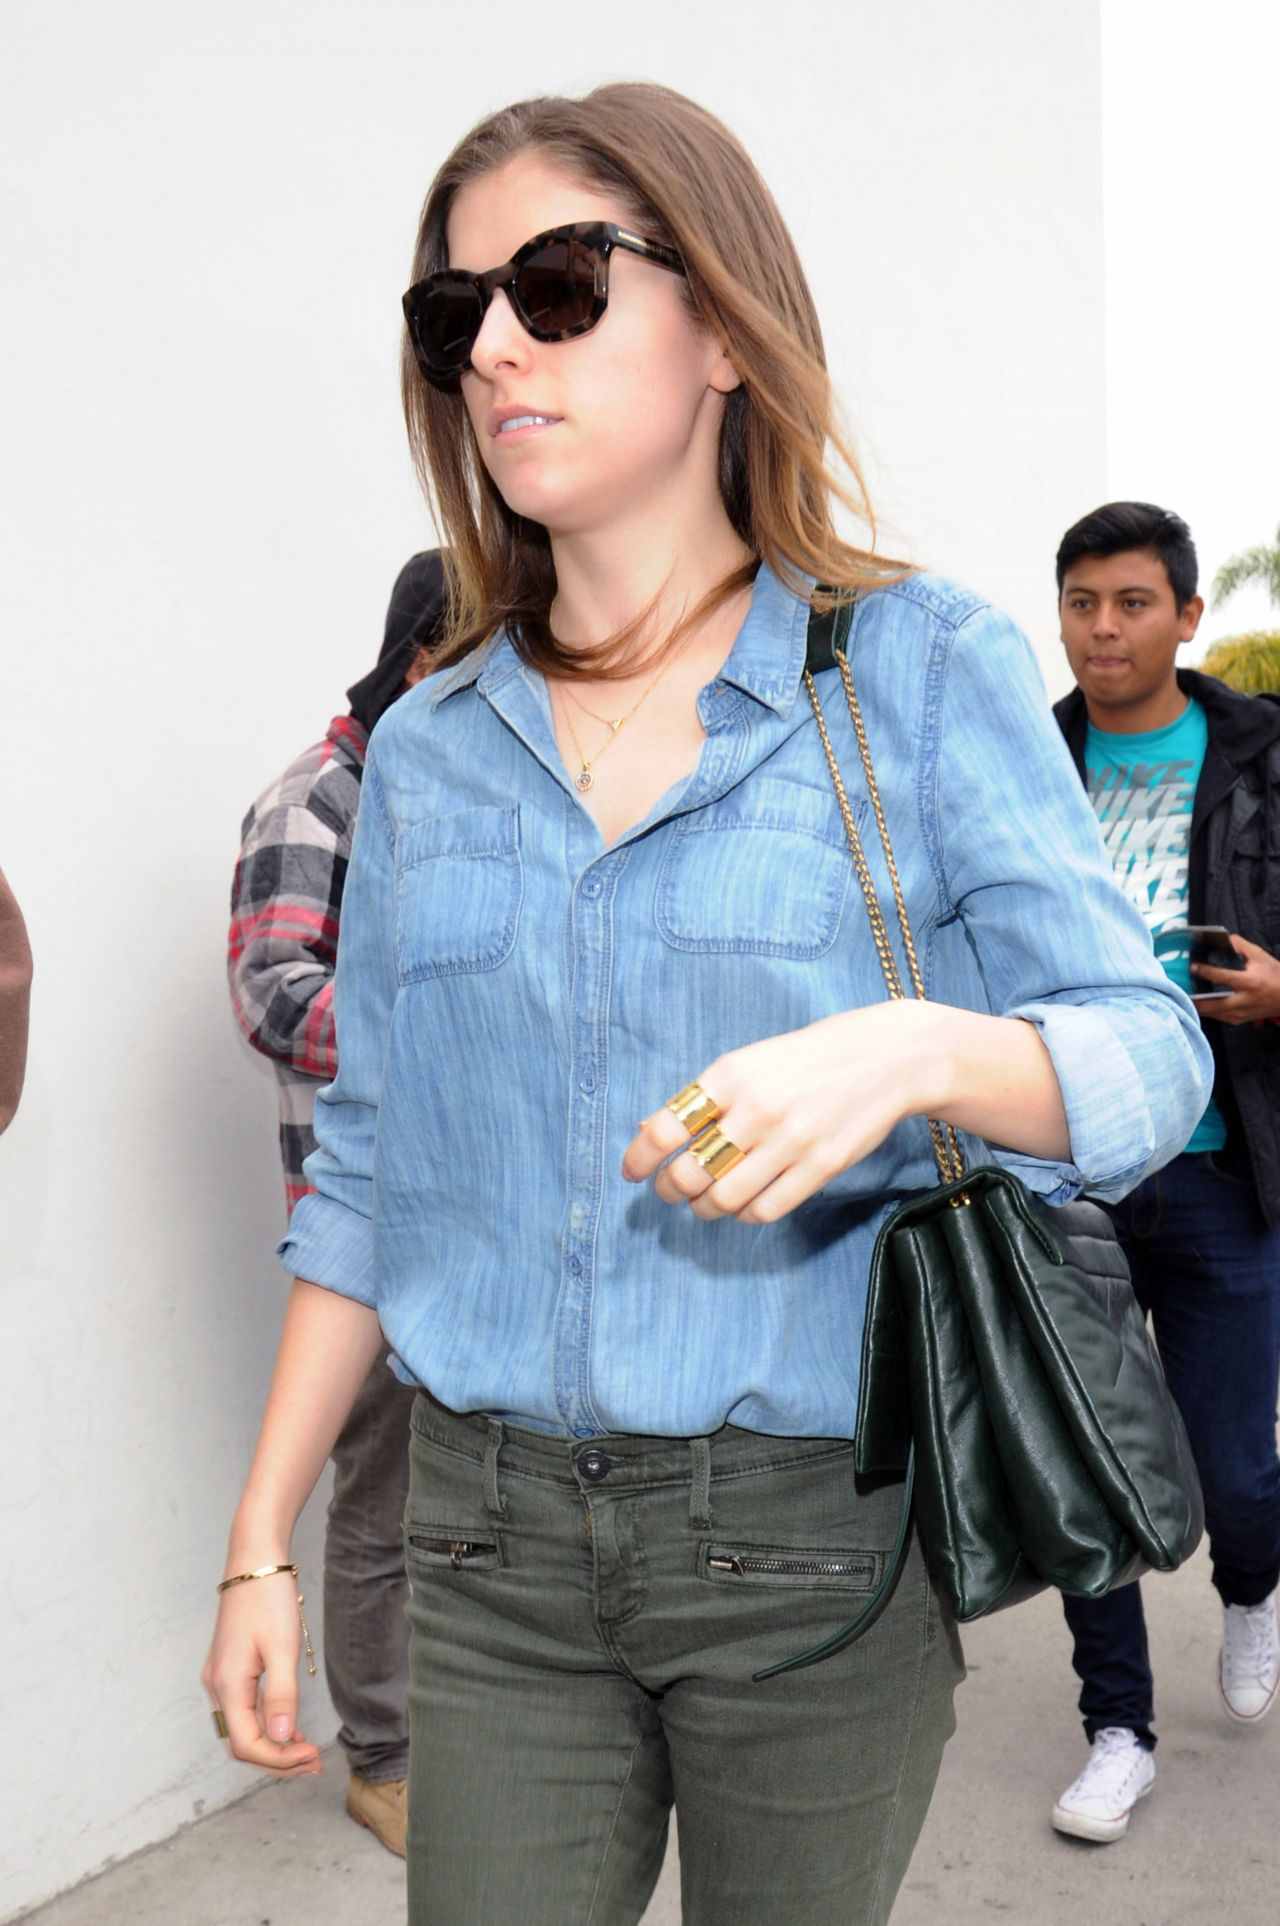 Anna Kendrick Casual Style - at LAX Airport - December 2014